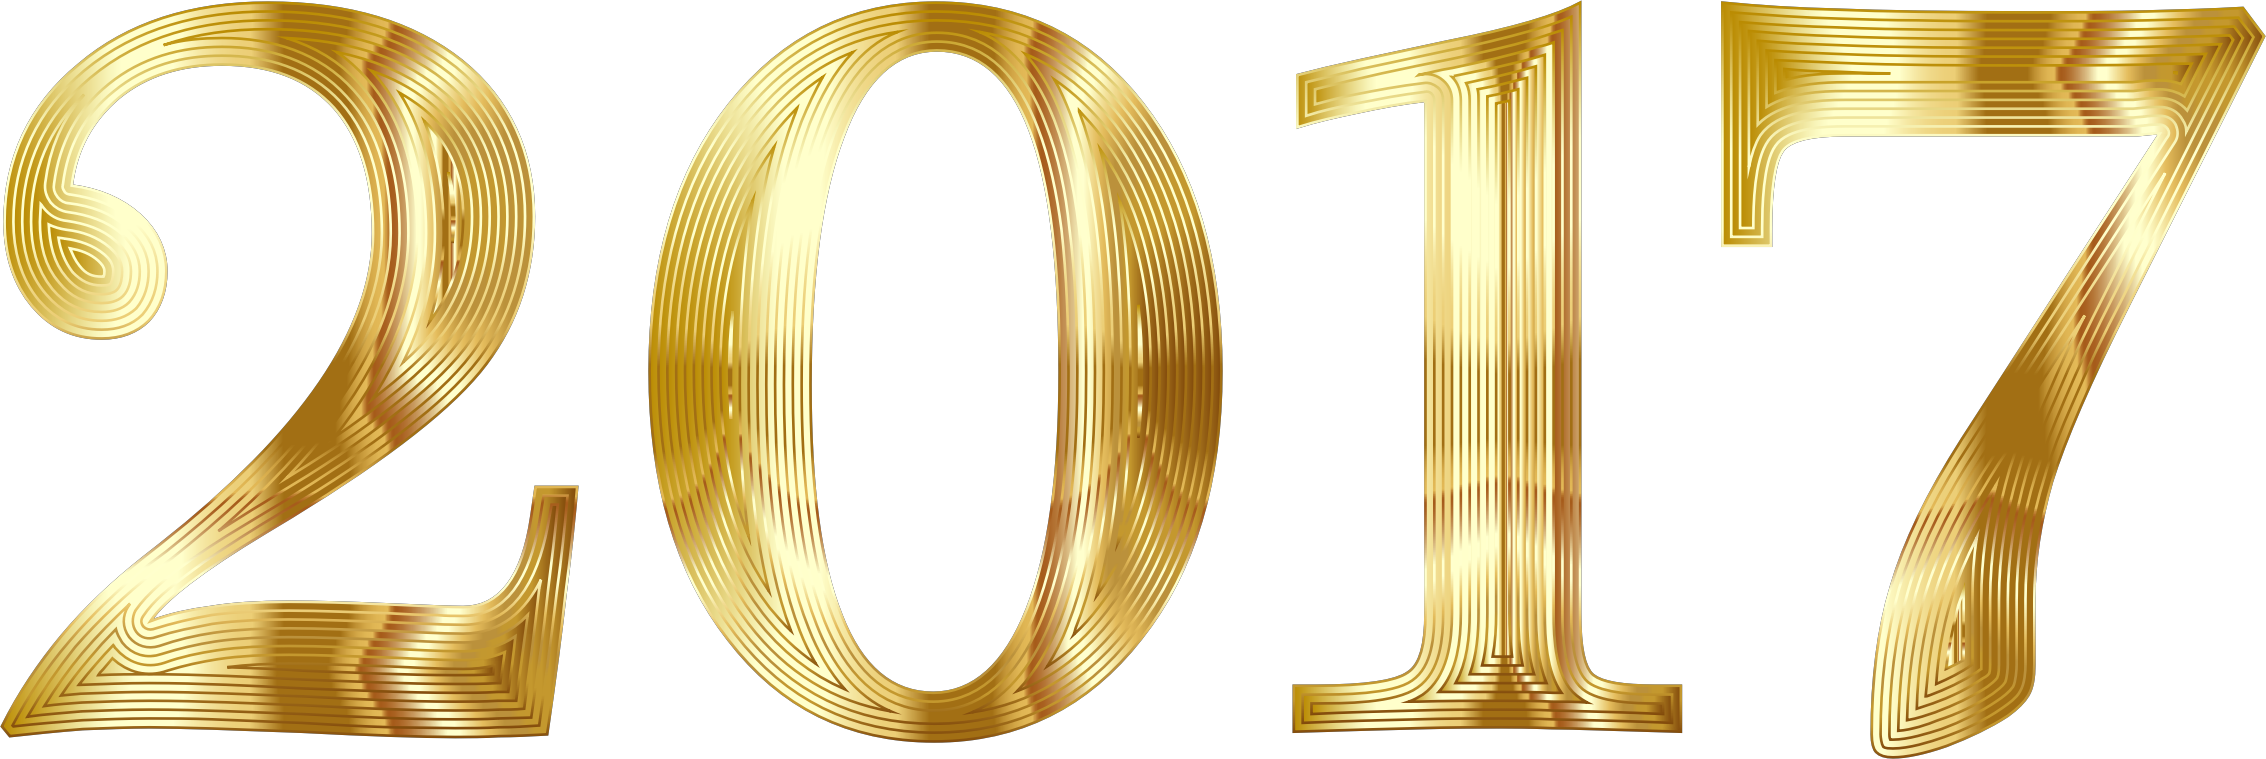 Gold 2017 Typography No Background by GDJ